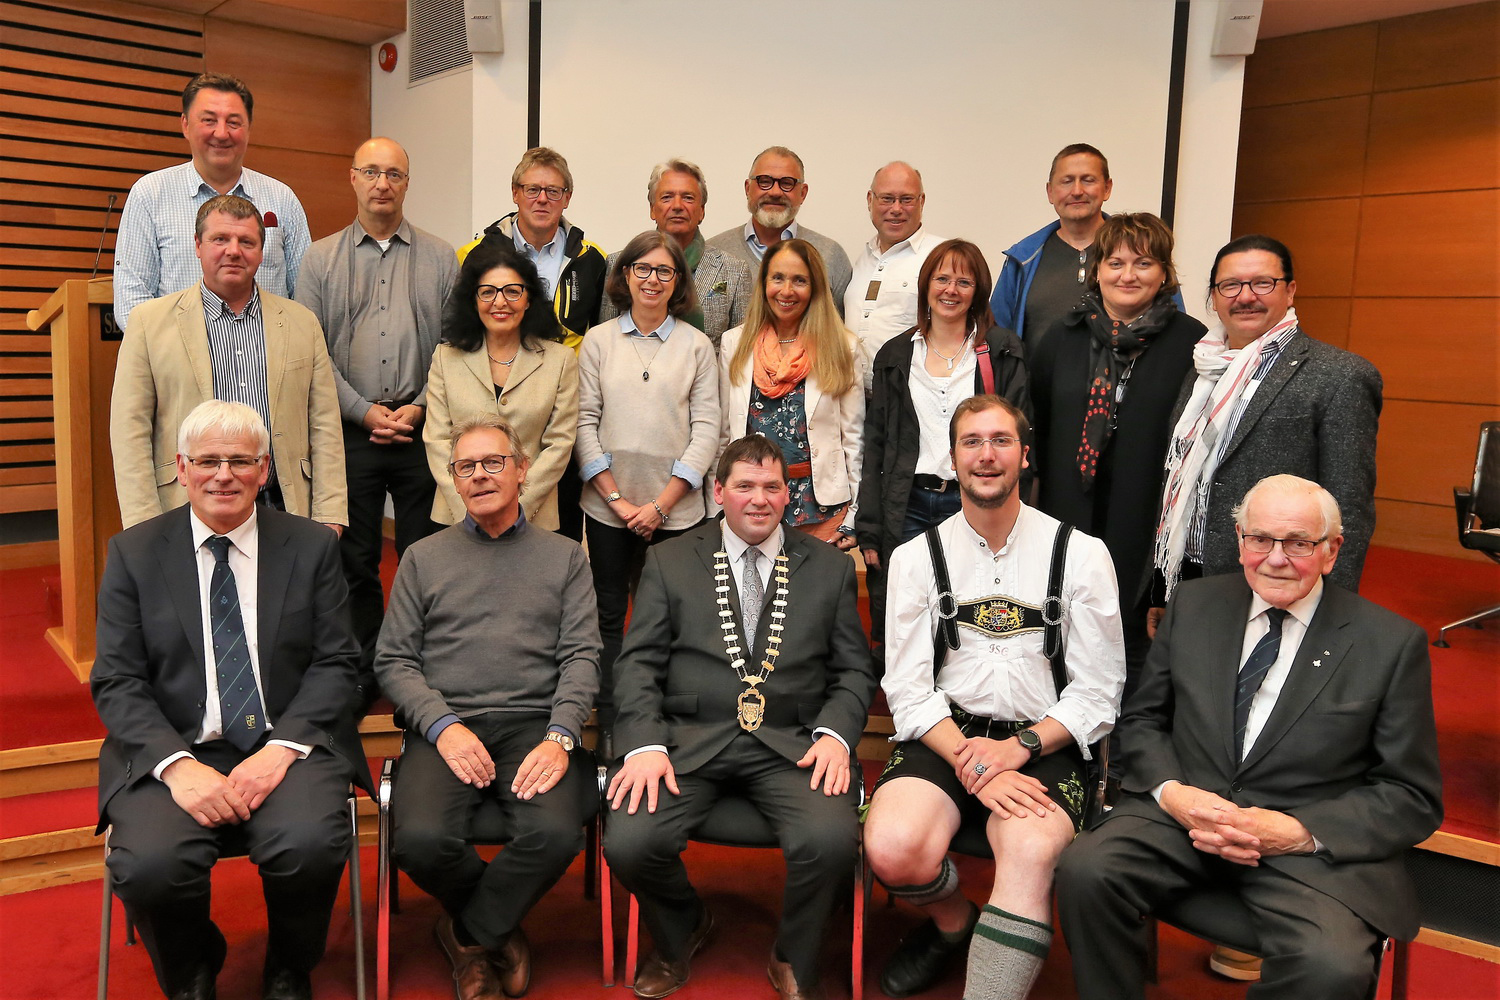 Cathaoirleach Welcomes Guests from Kempten and Crozon  Photo 4